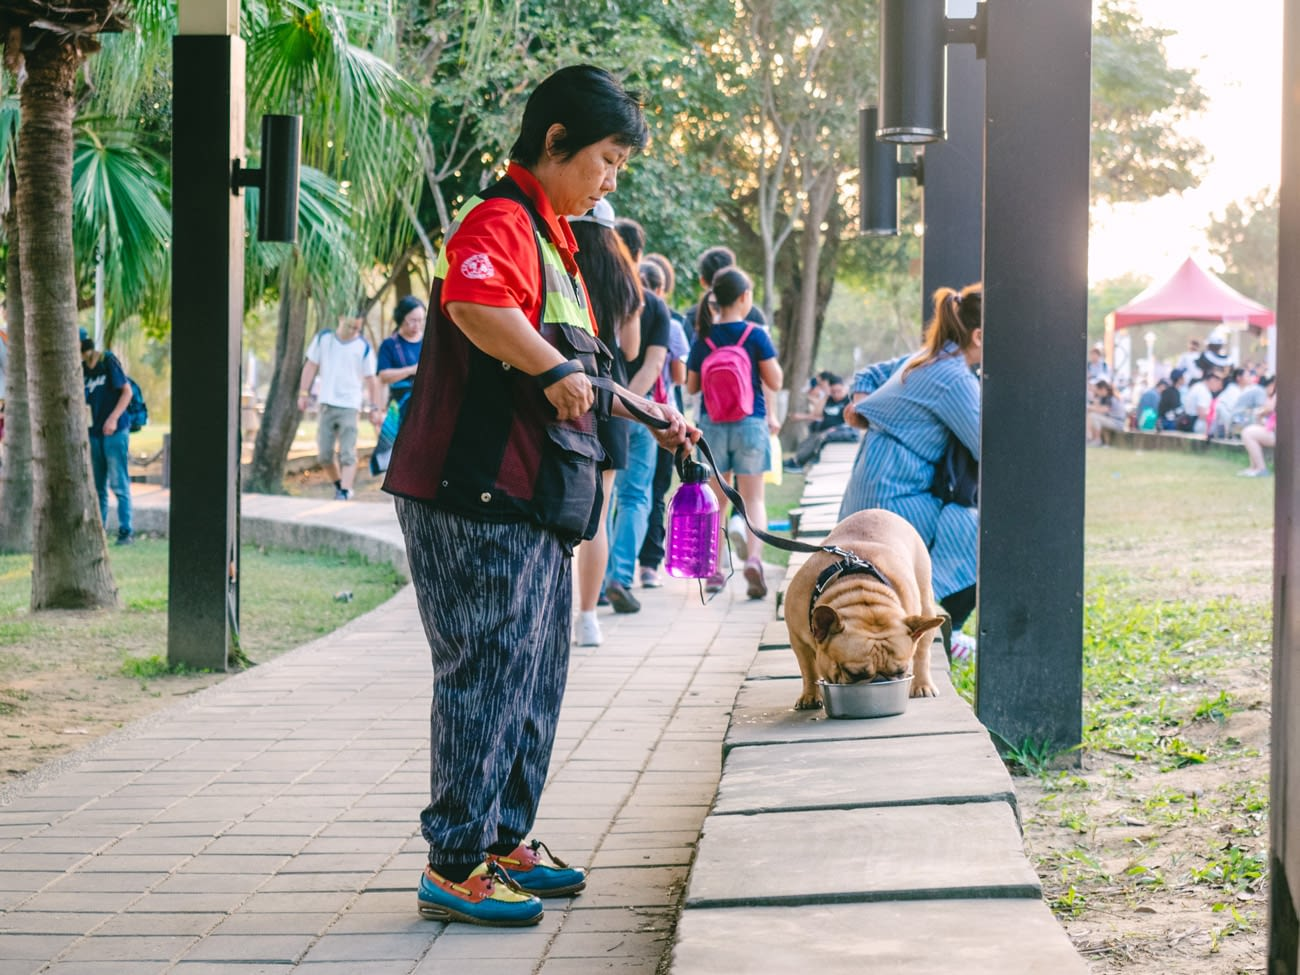 Tainan - Pokemon Go Safari Event - Pet owners giving their dog water